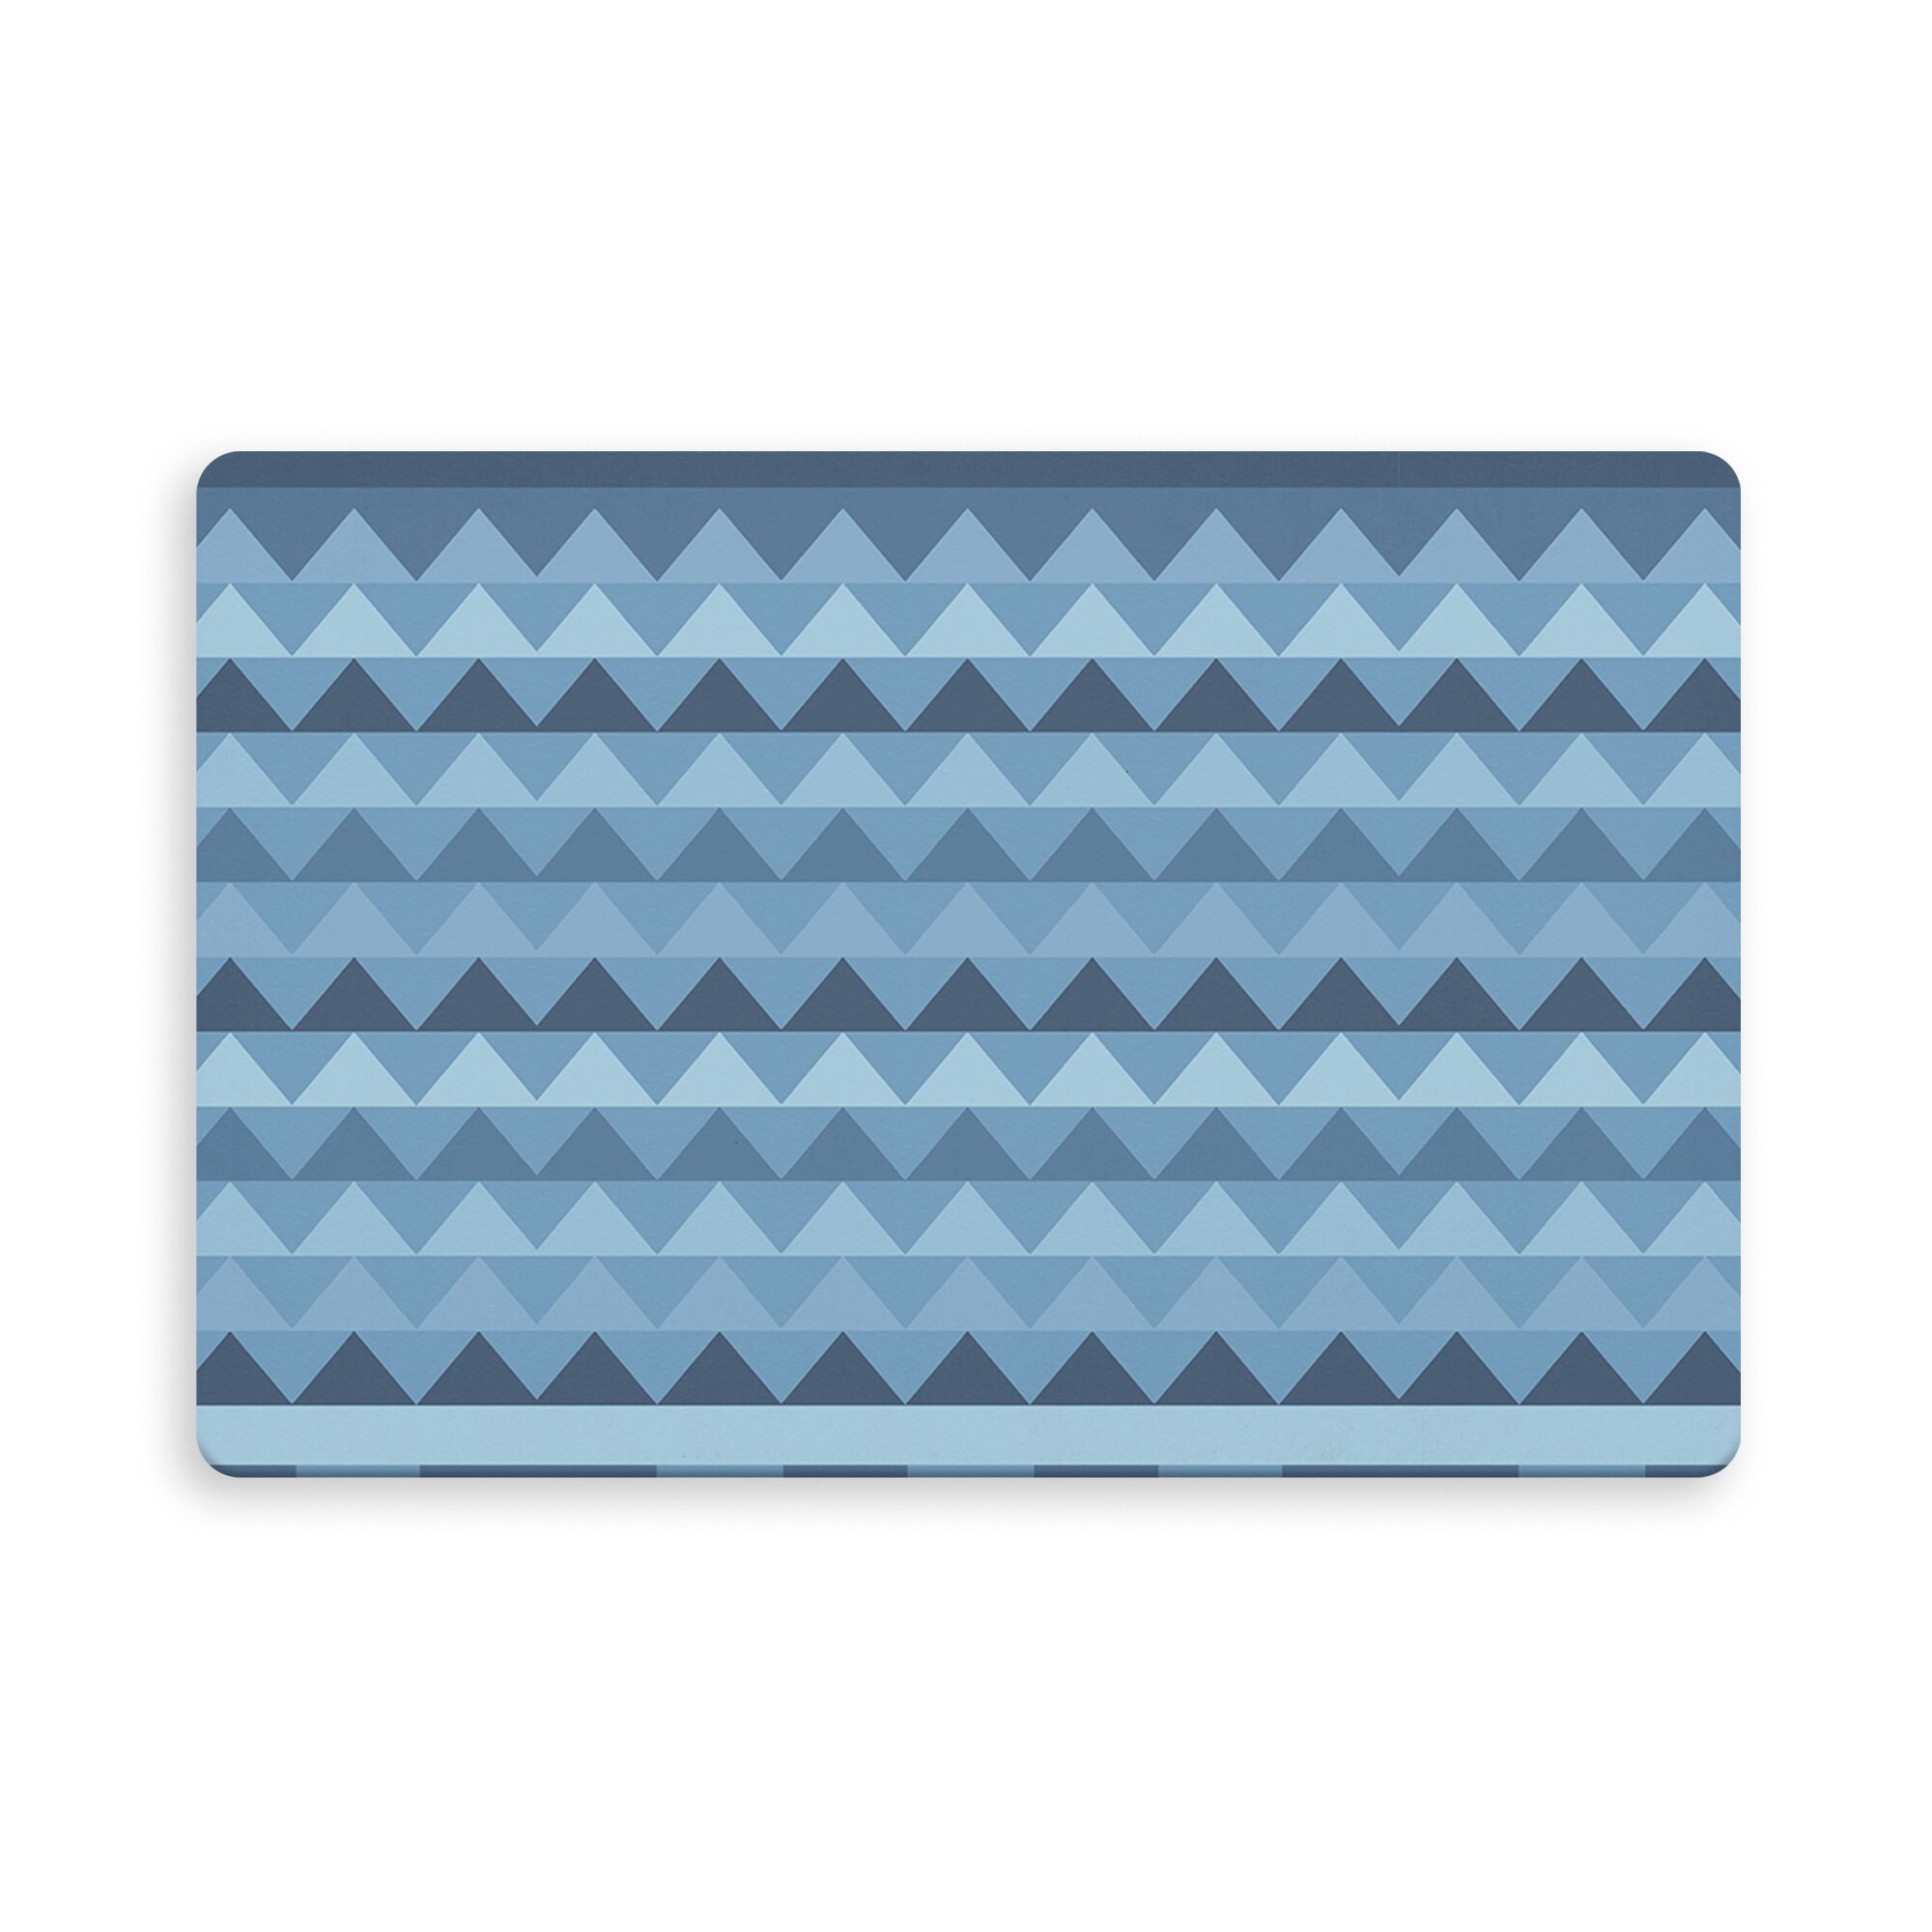 Gavin Manske Indoor/Outdoor Doormat Color: Blue, Mat Size: Rectangle 2'6